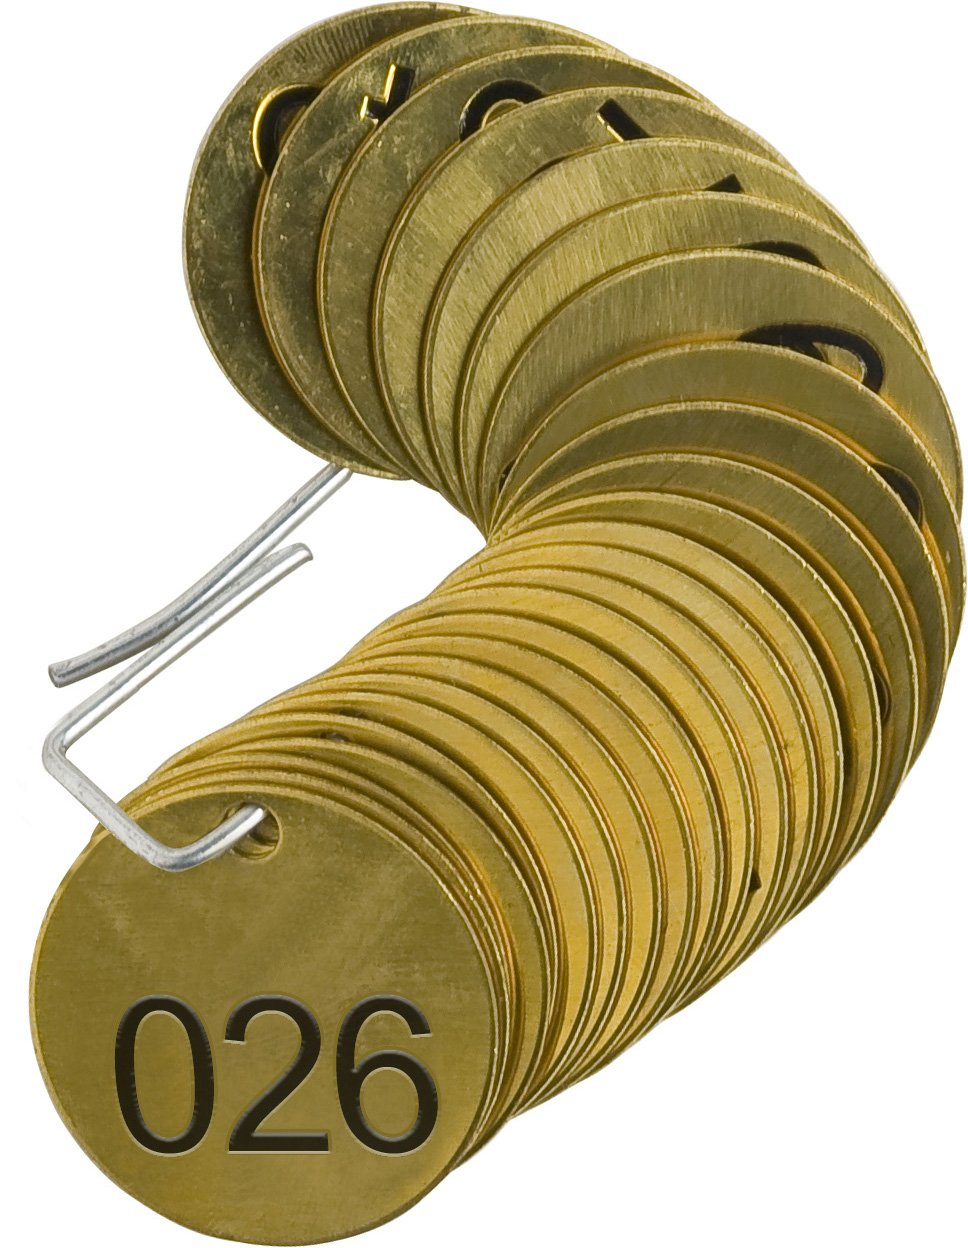 Brady 23201 1-1/2'' Diameter, B-907 Brass, Brass Color, Number Sequence 026-050 Round Stamped Brass Valve Tags, Top Line Legend (Blank) (Pack Of 25)